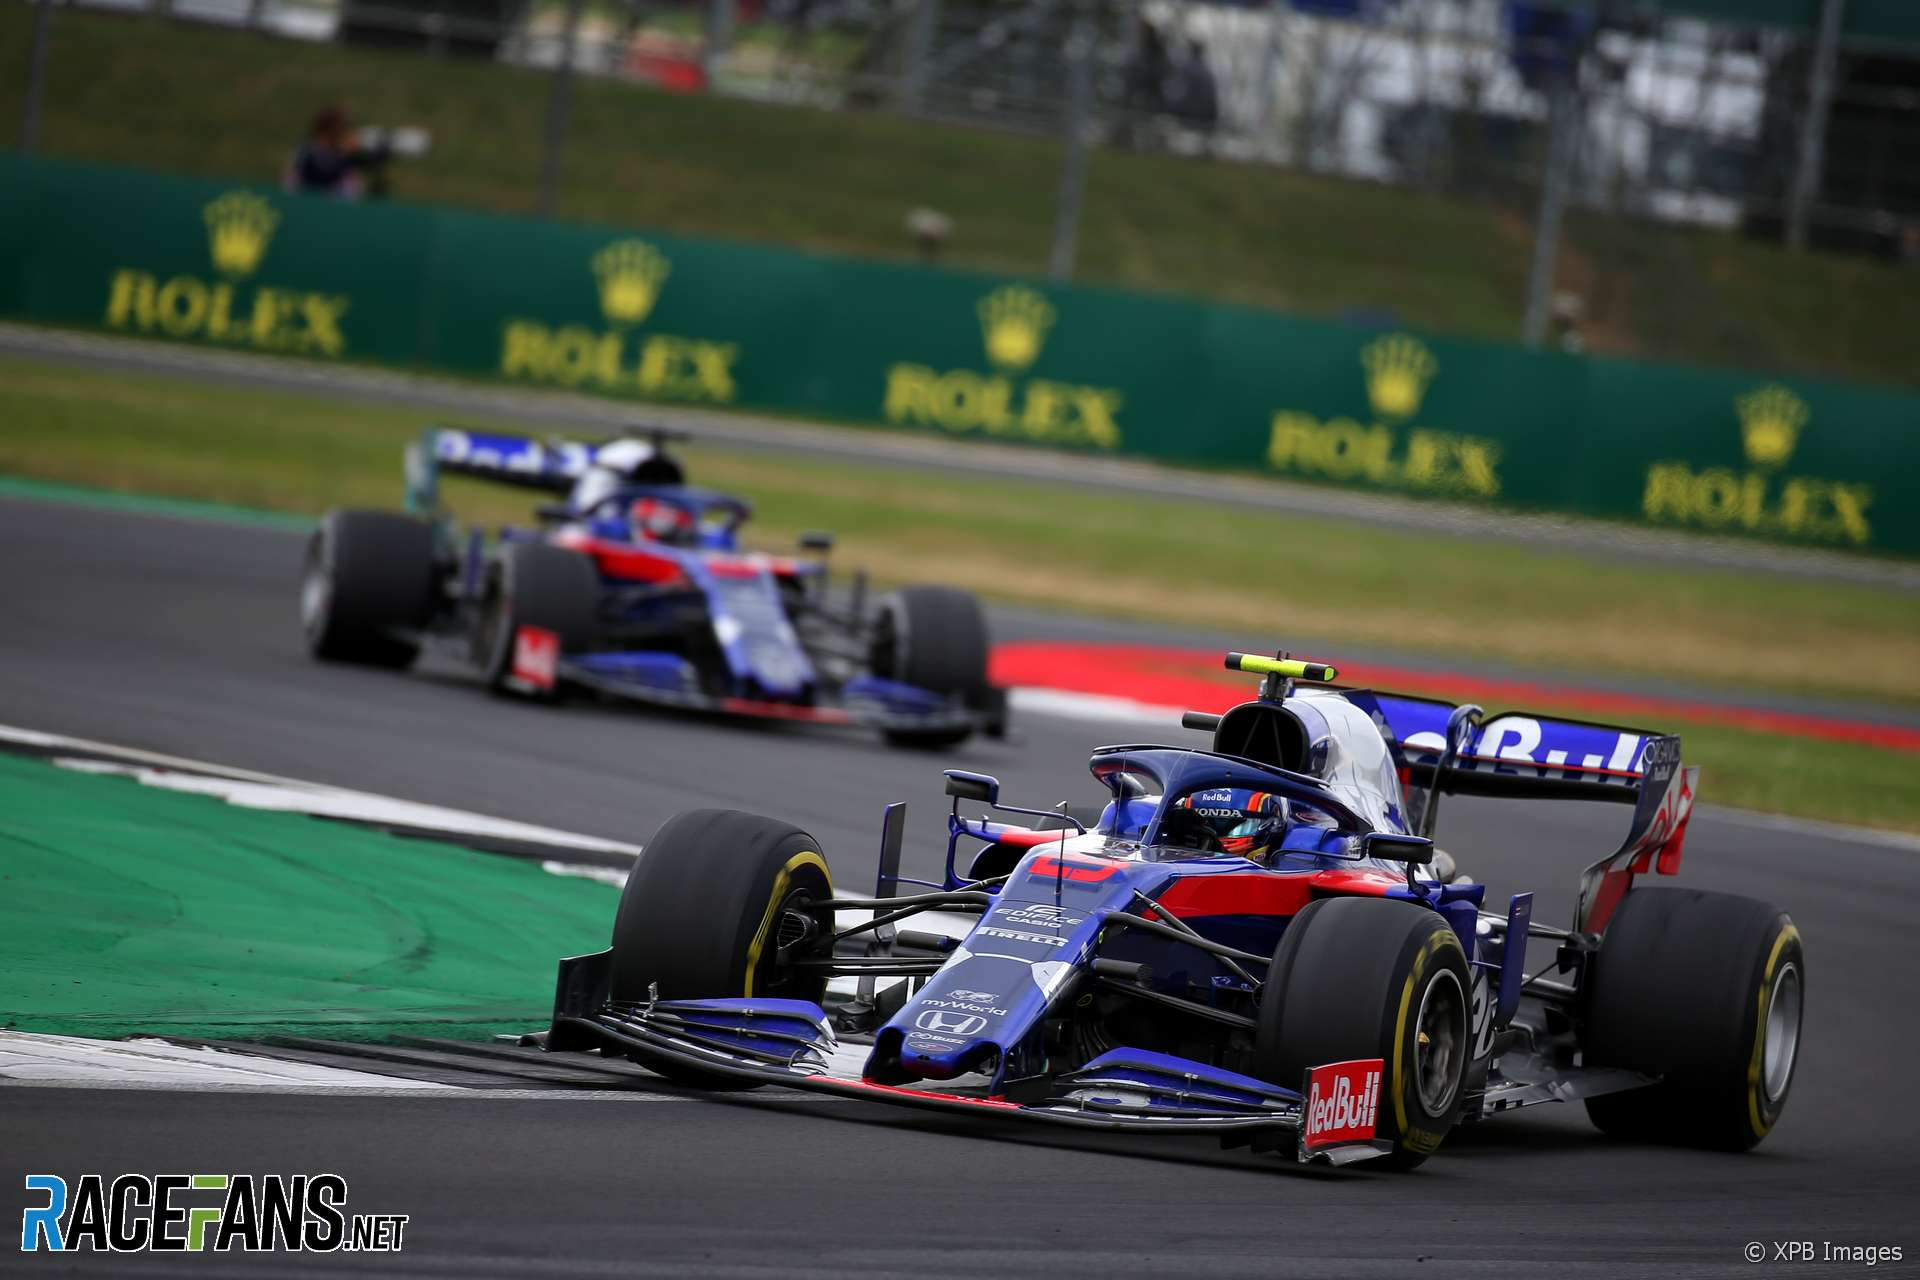 High voltage safety warning meant Albon couldn't pit